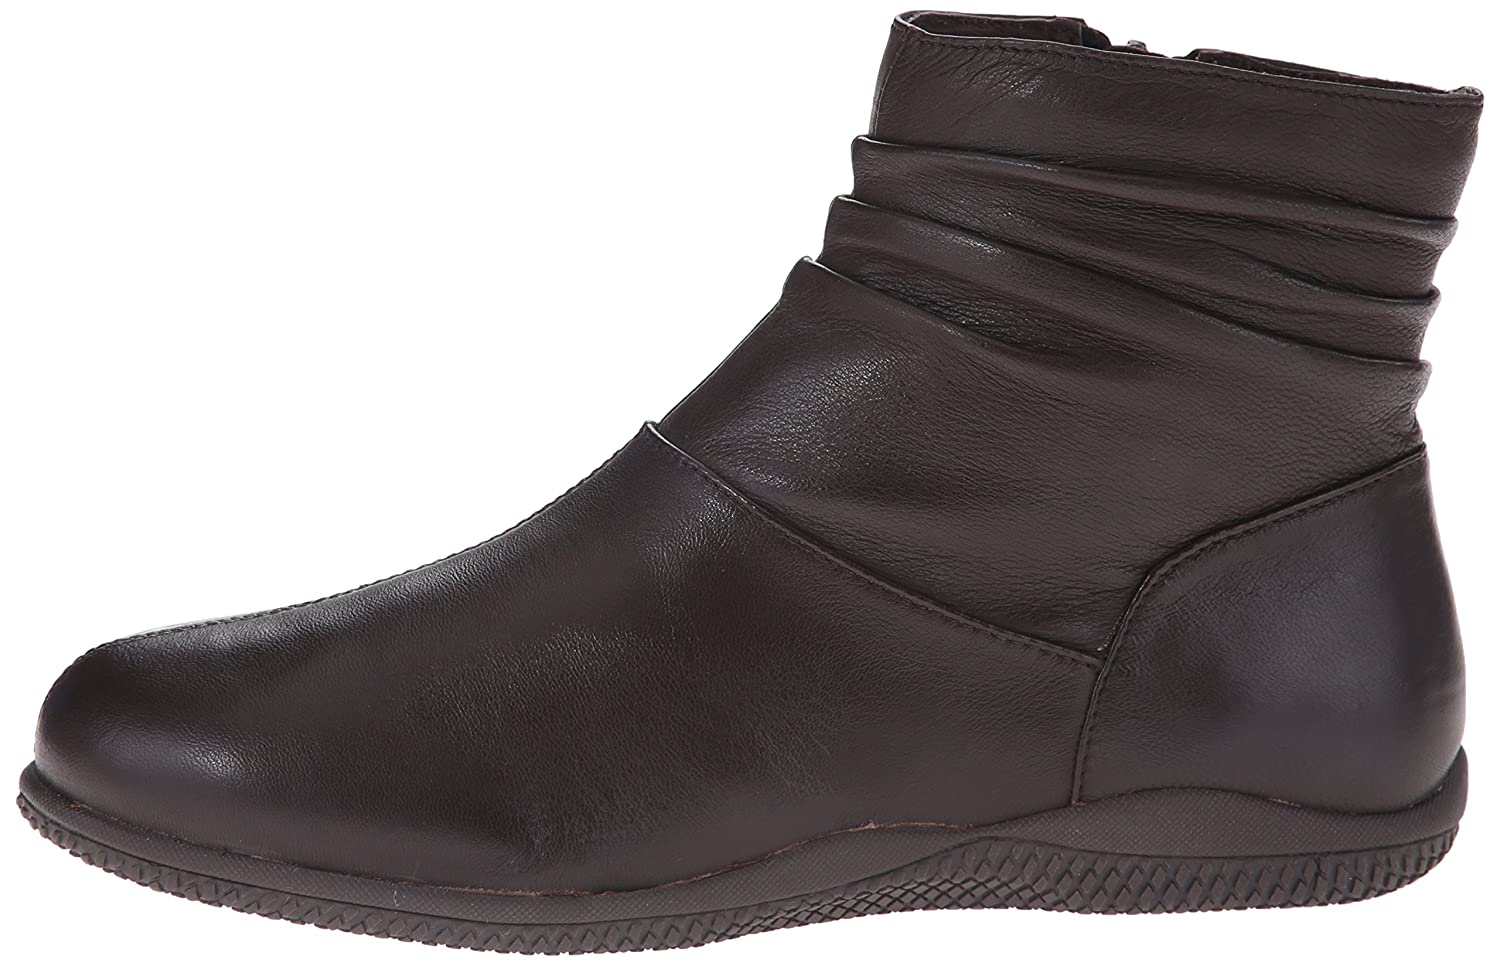 SoftWalk 11 Women's Hanover Boot B00S01E10G 11 SoftWalk W US|Dark Brown f6ddf3